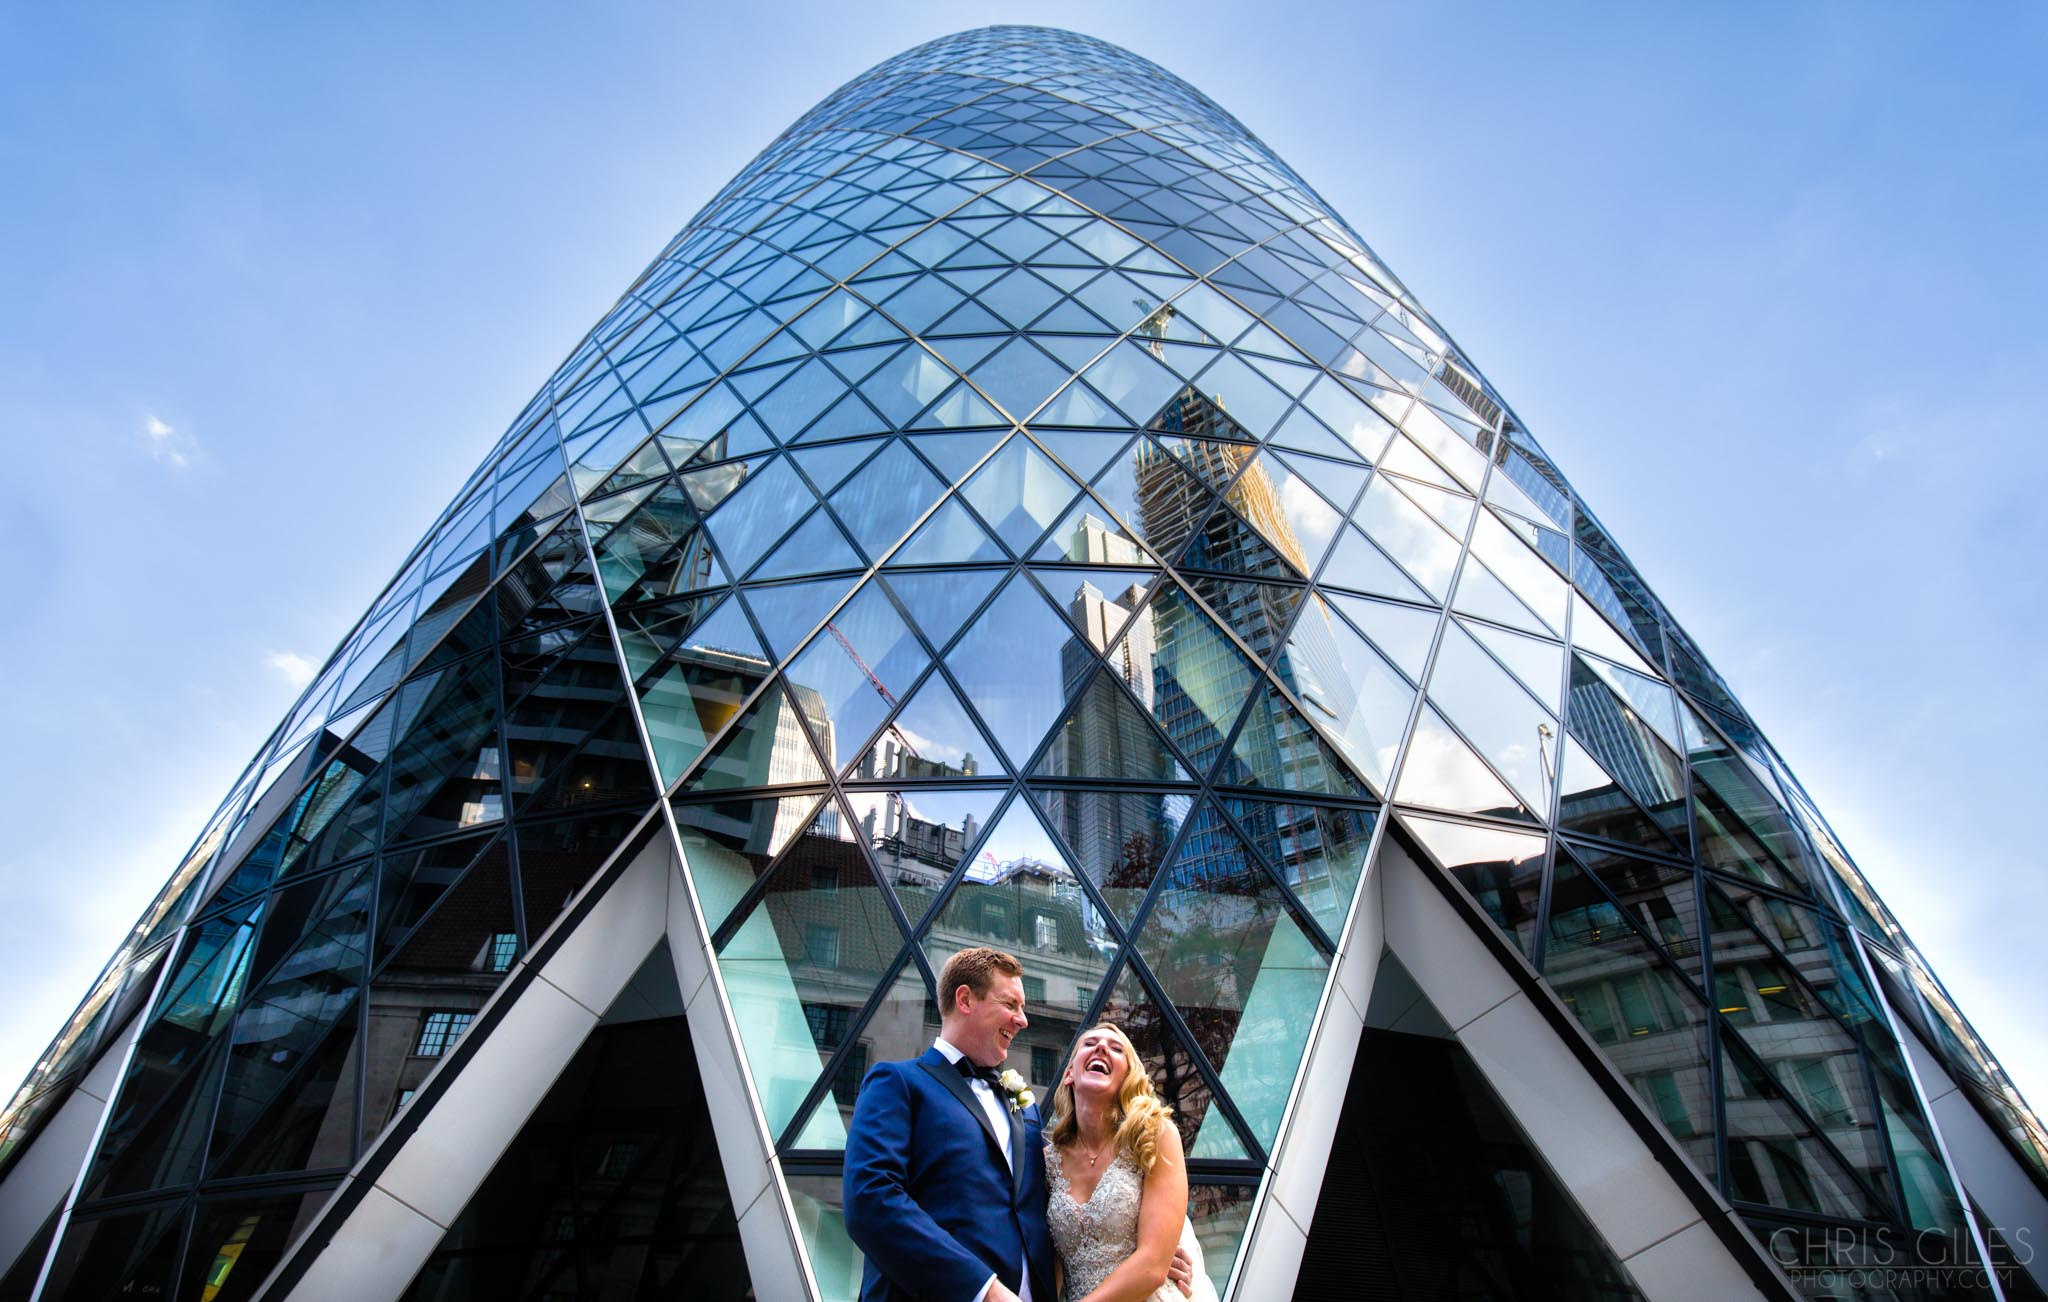 Weddings at the Gherkin, London